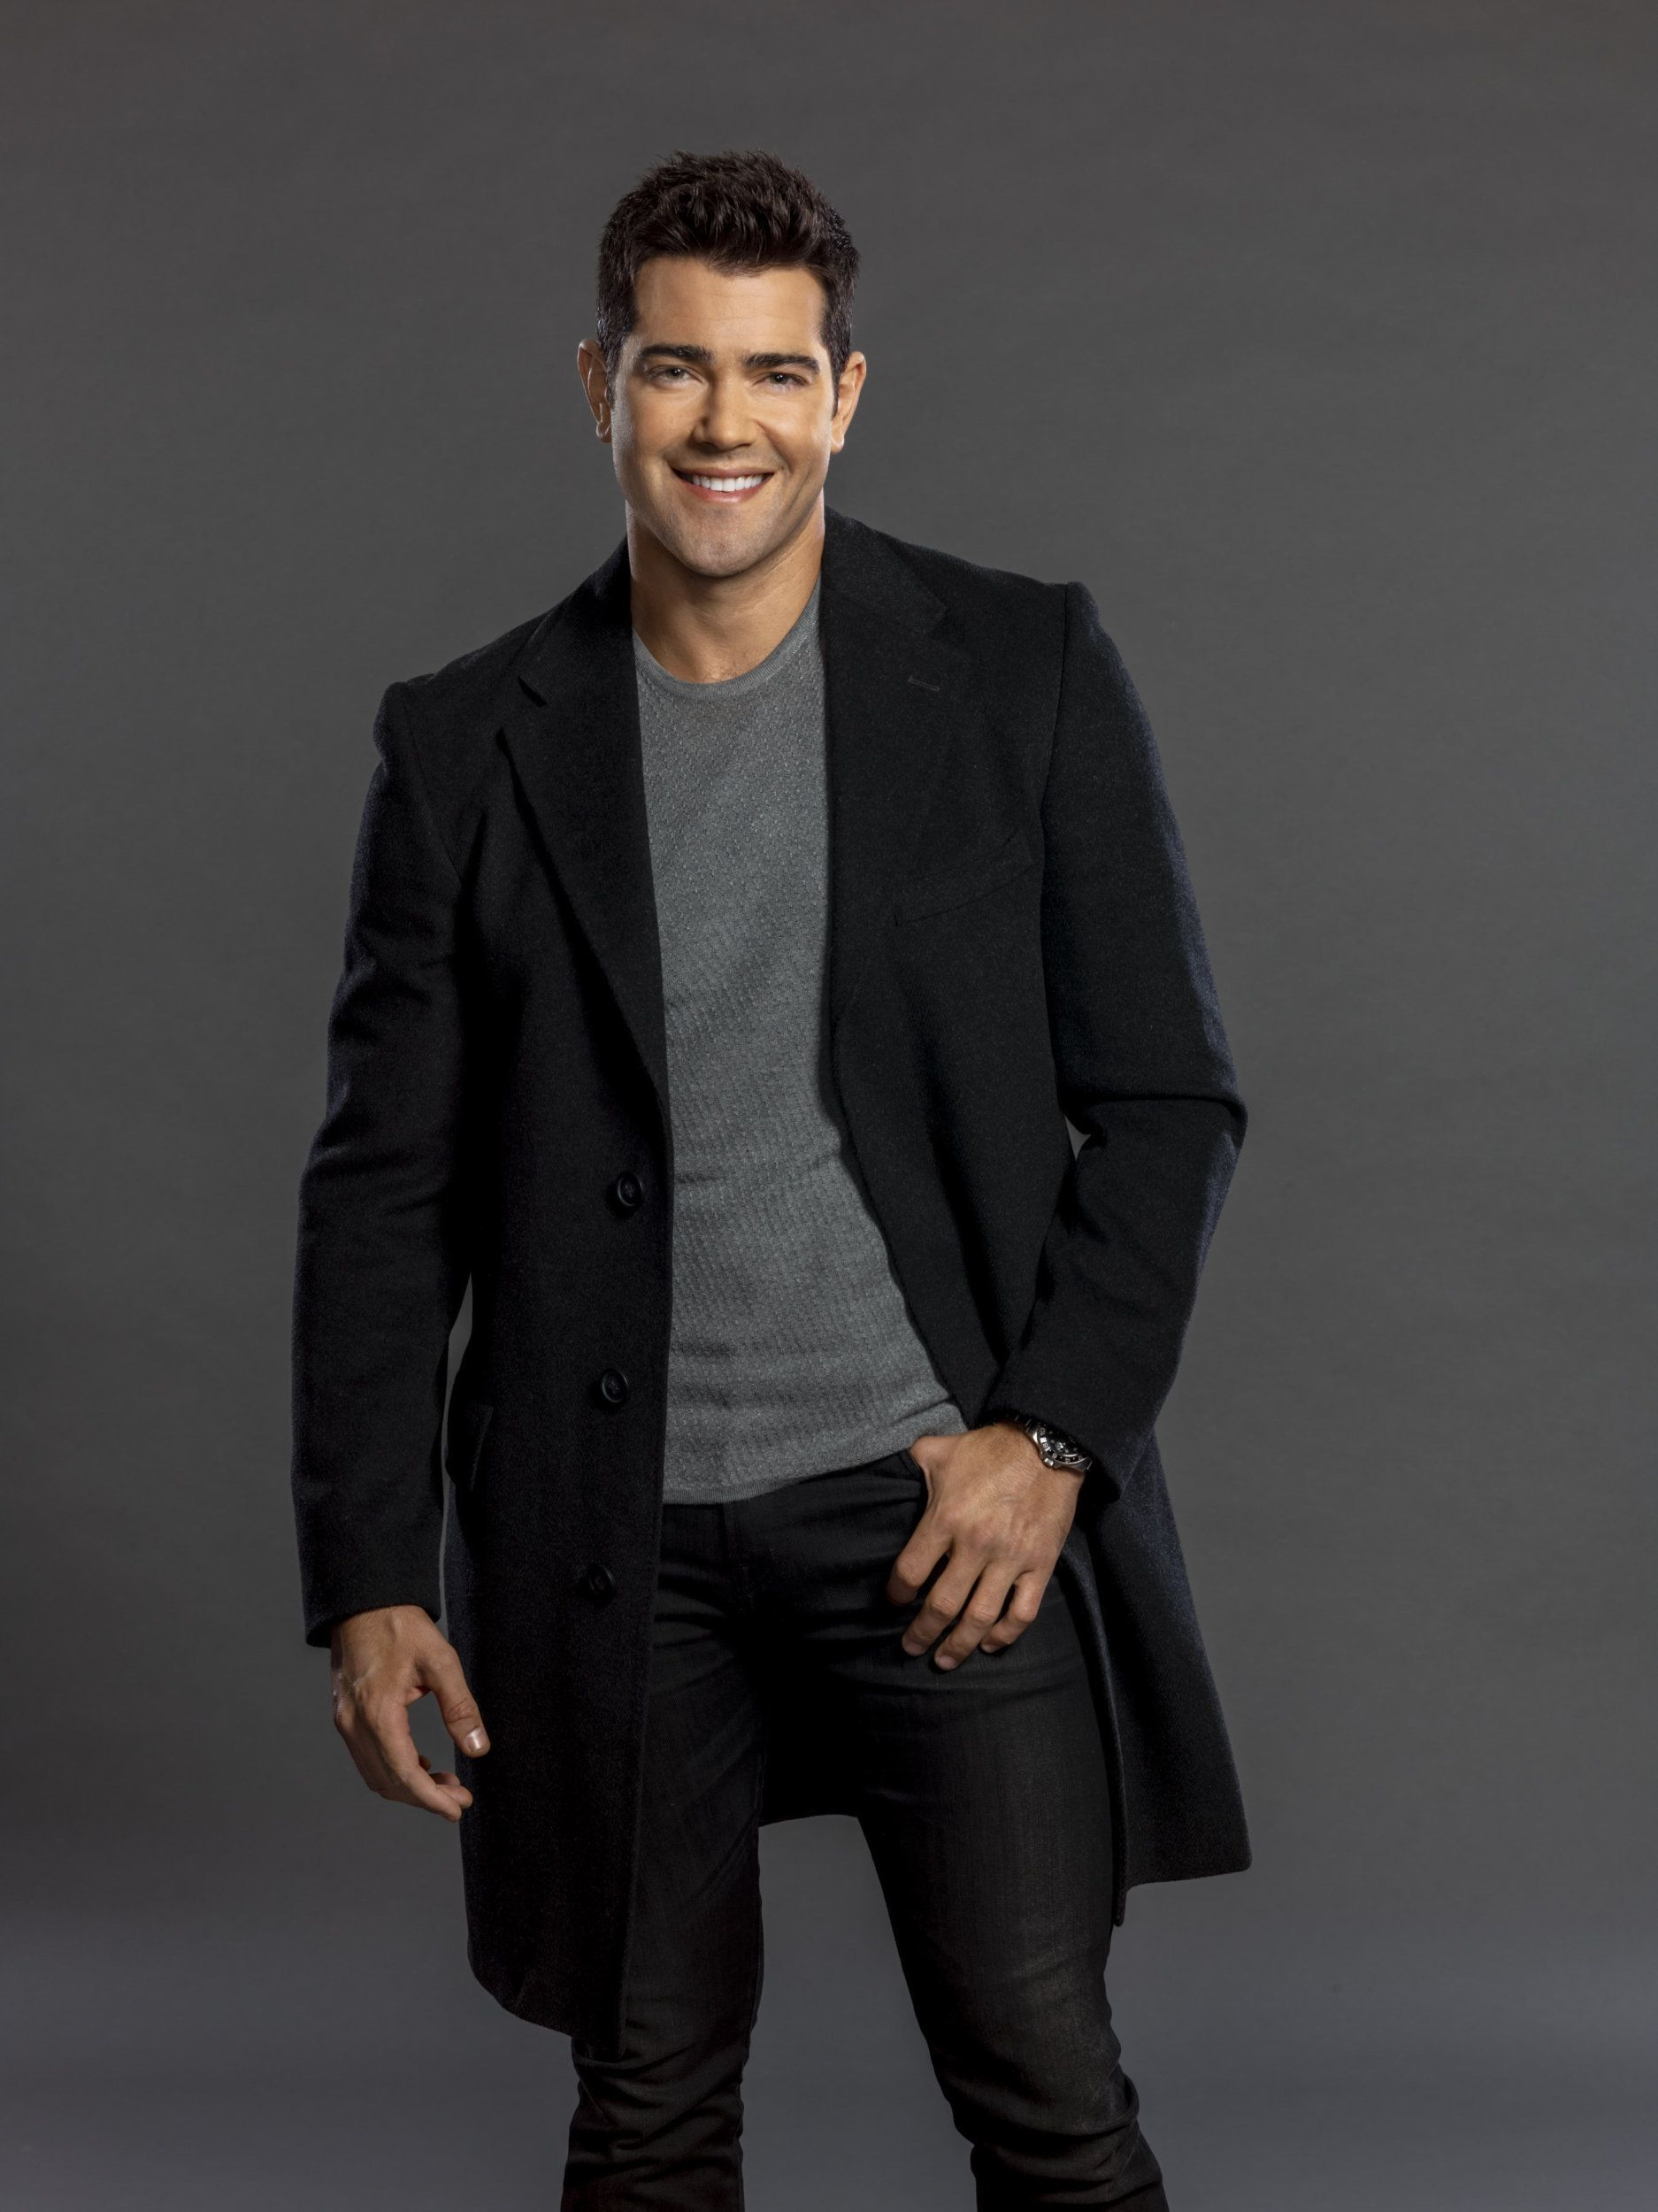 """Learn more about the cast of the Hallmark Channel original movie, """"Christmas Under the Stars ..."""